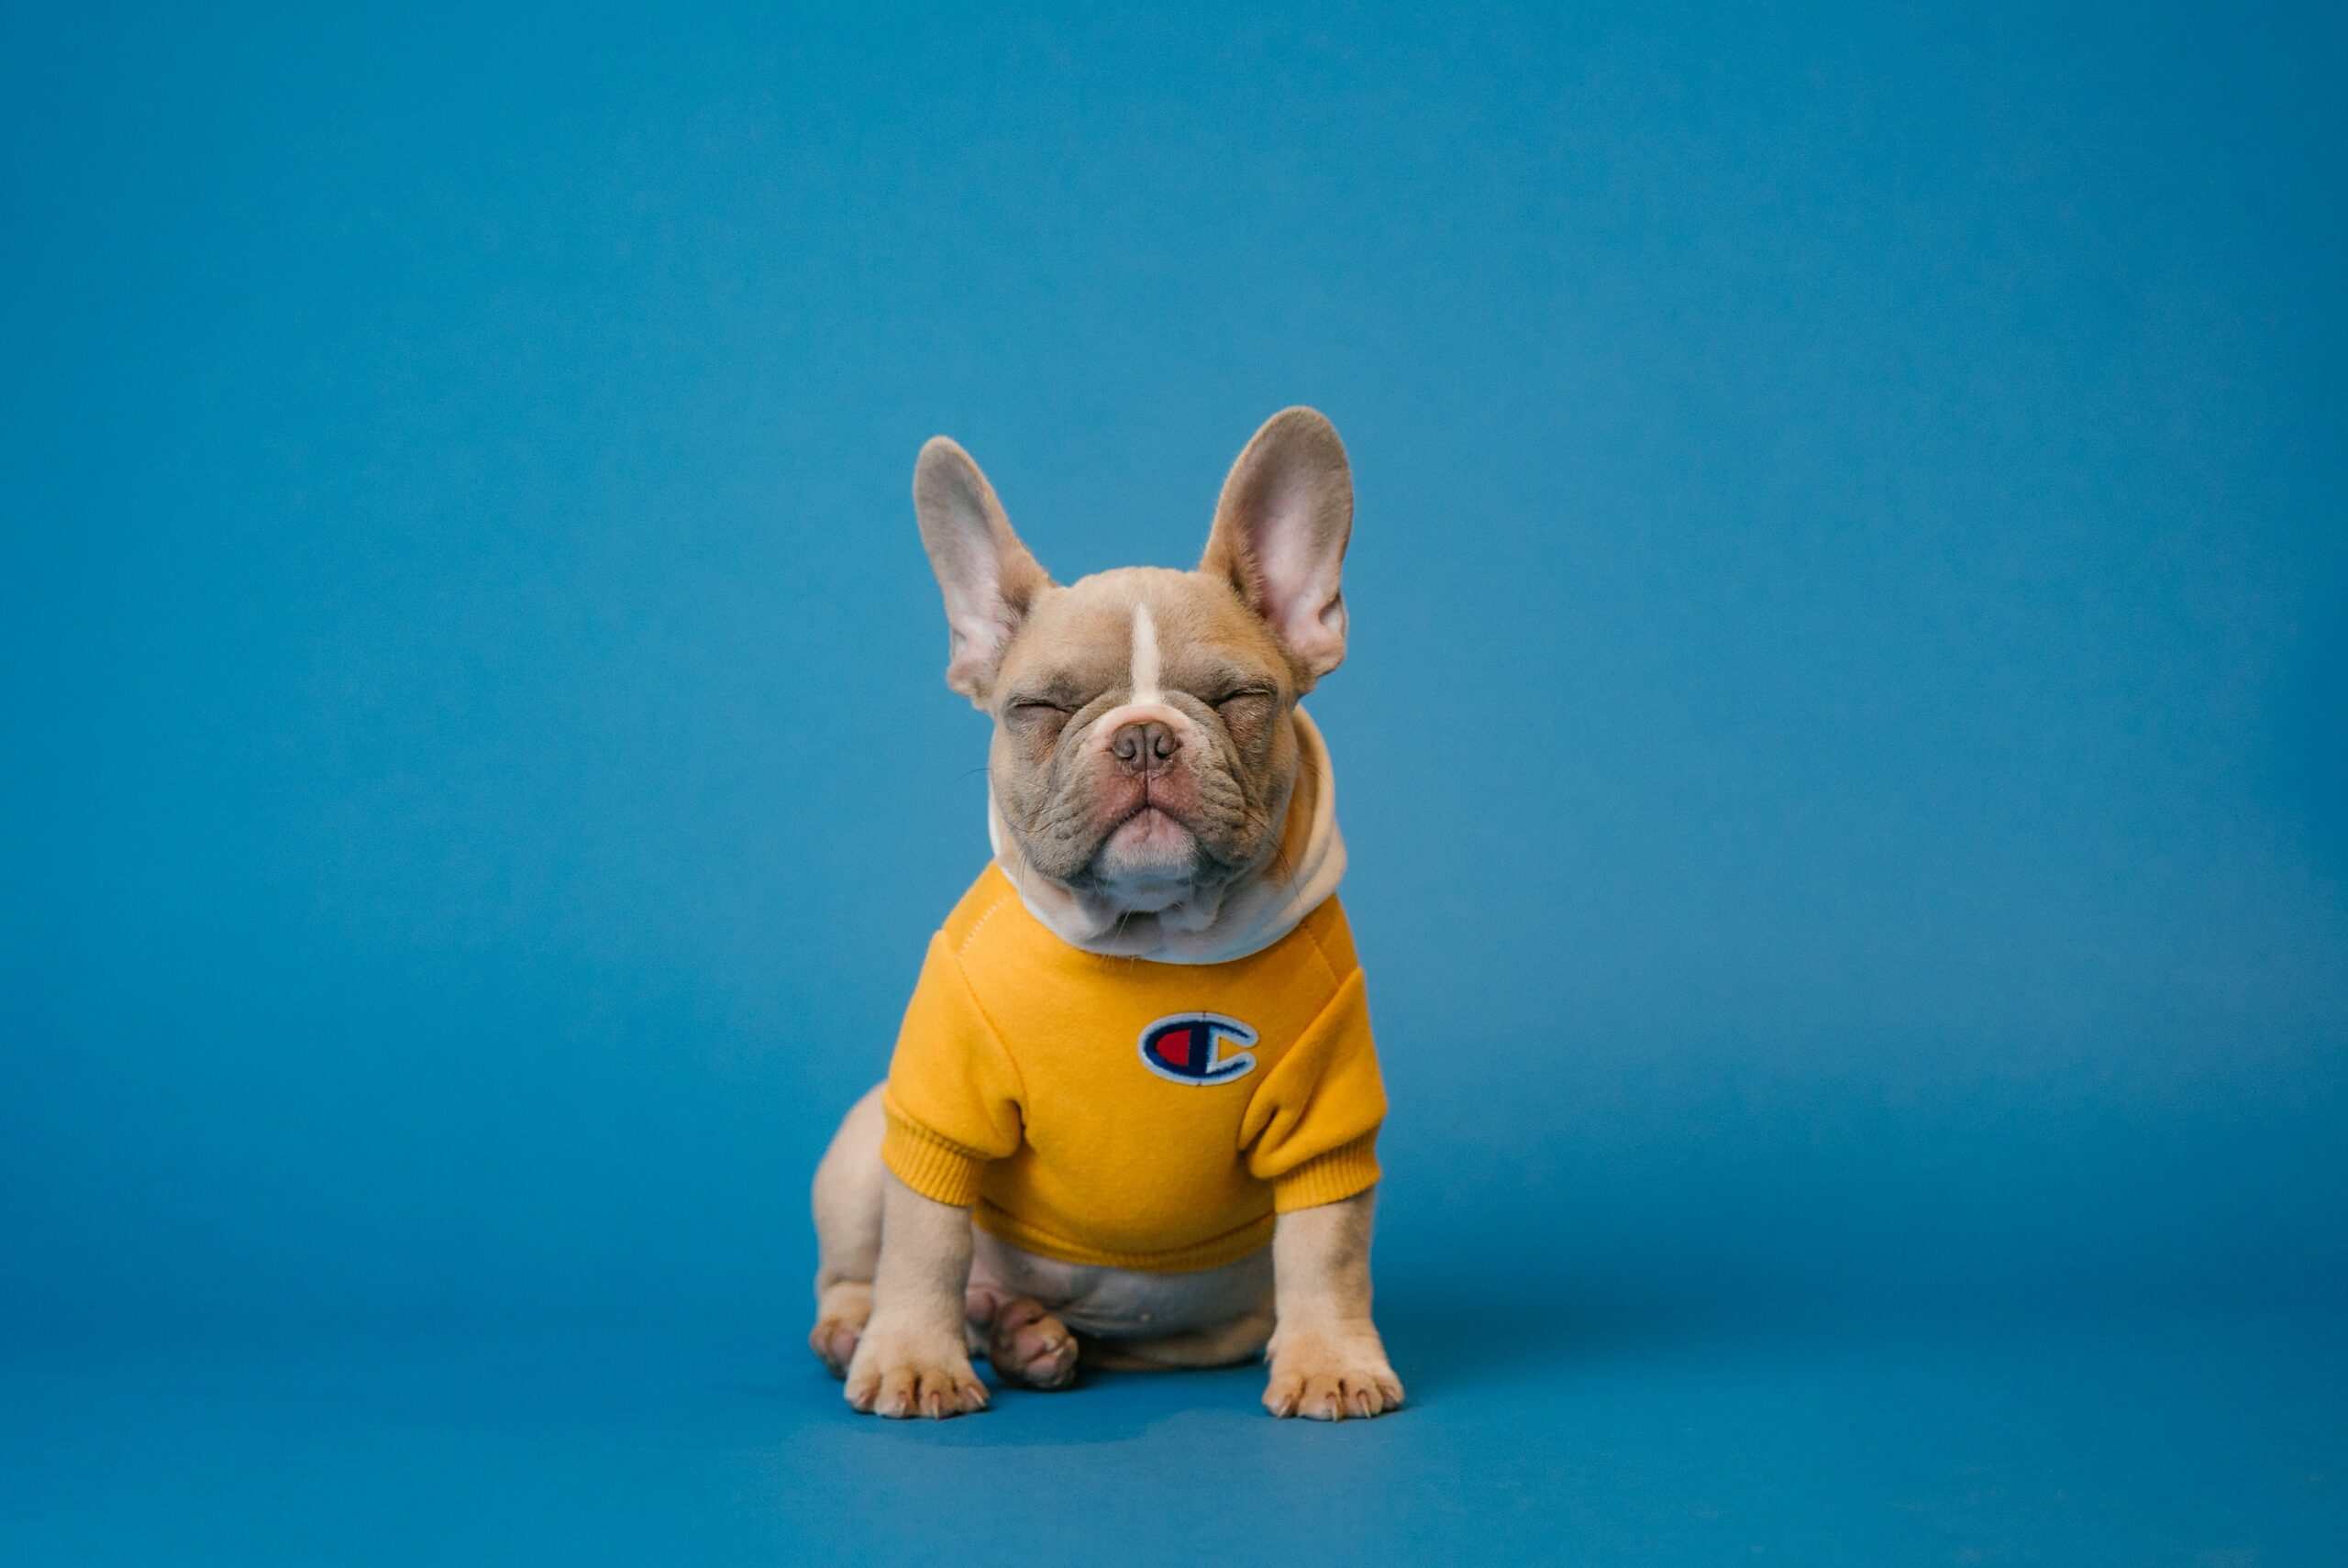 Image of a dog with a yellow jumper on sat in front of a blue screen